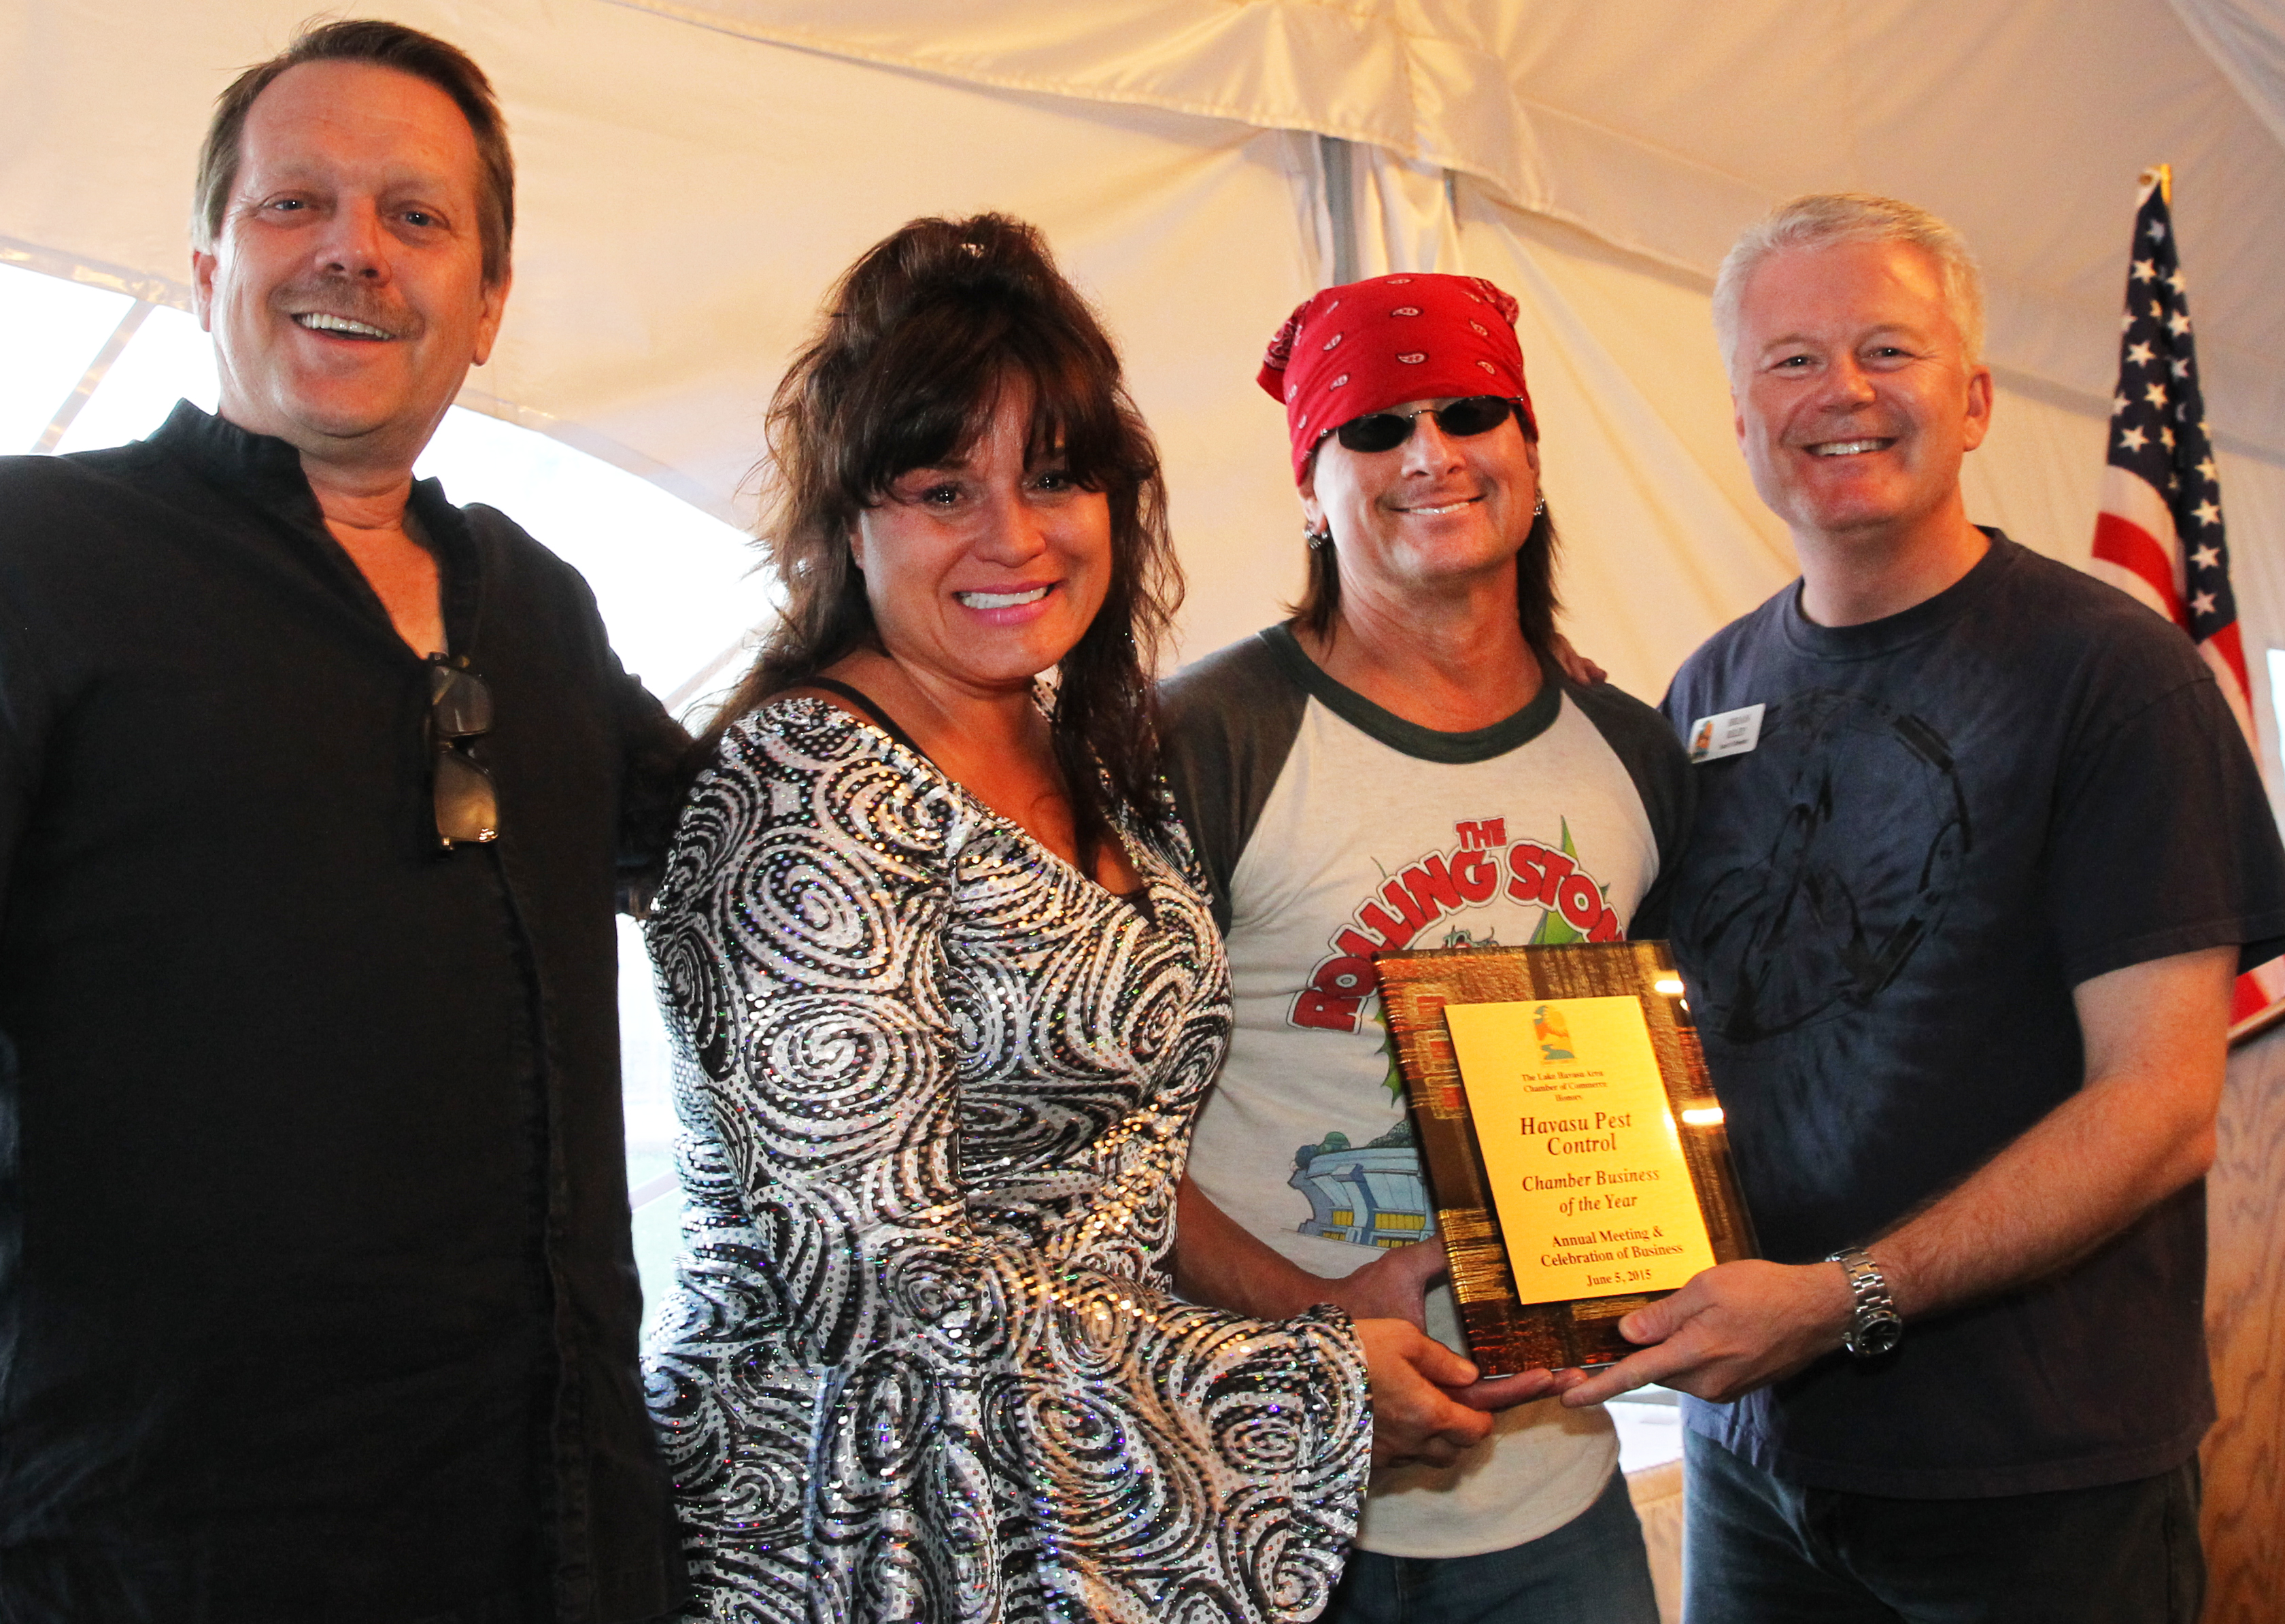 Chamber of Commerce Presents Community Awards Friday Evening